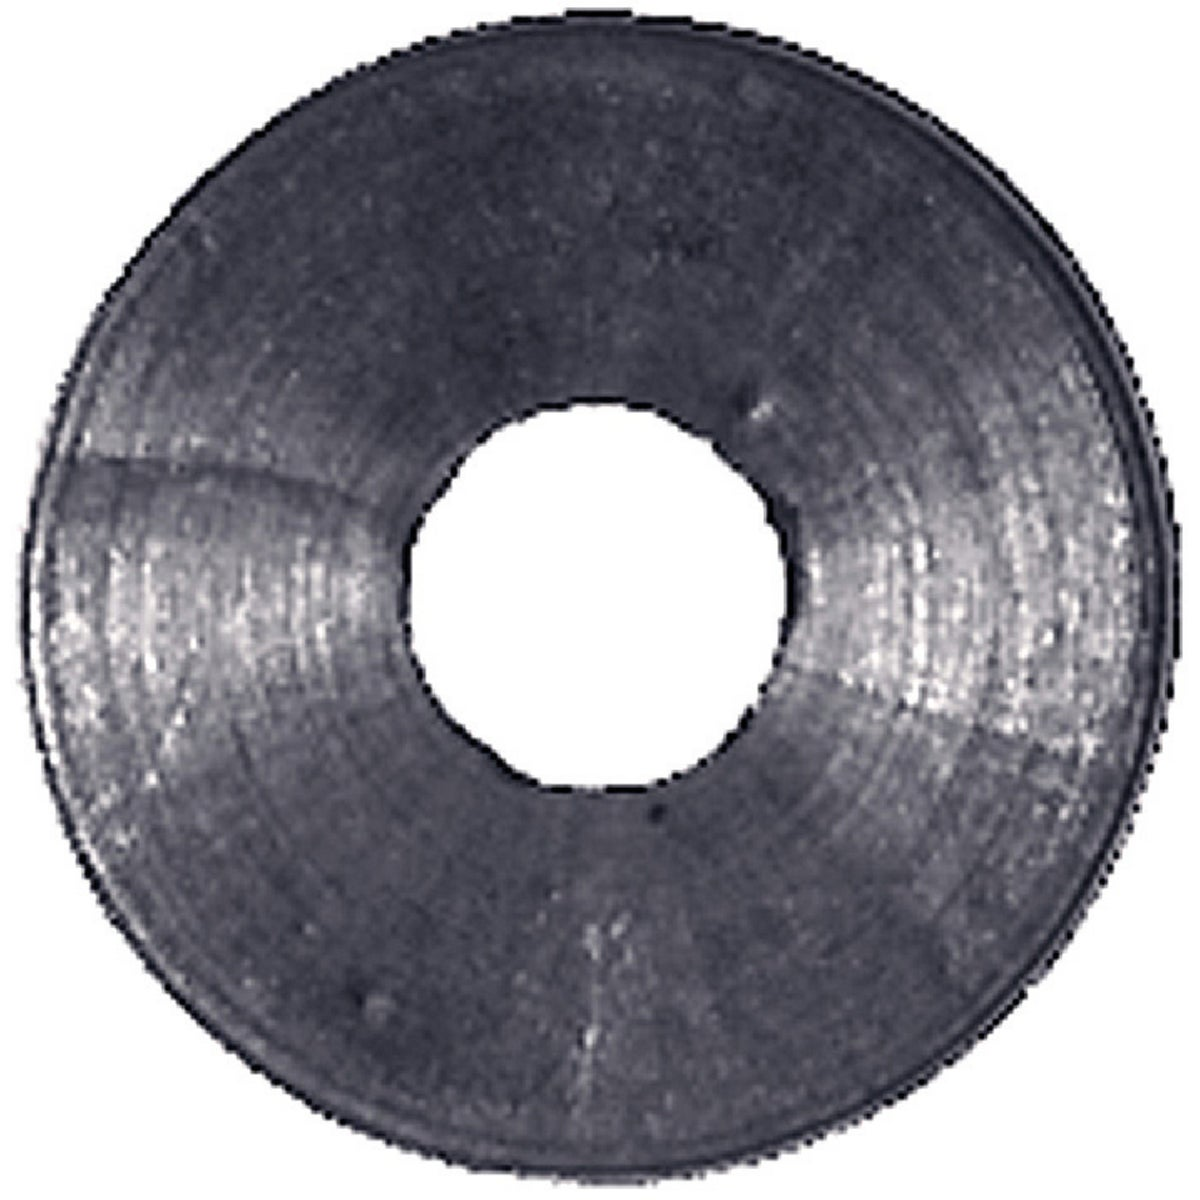 1/4M FLAT WASHER - 35074B by Danco Perfect Match